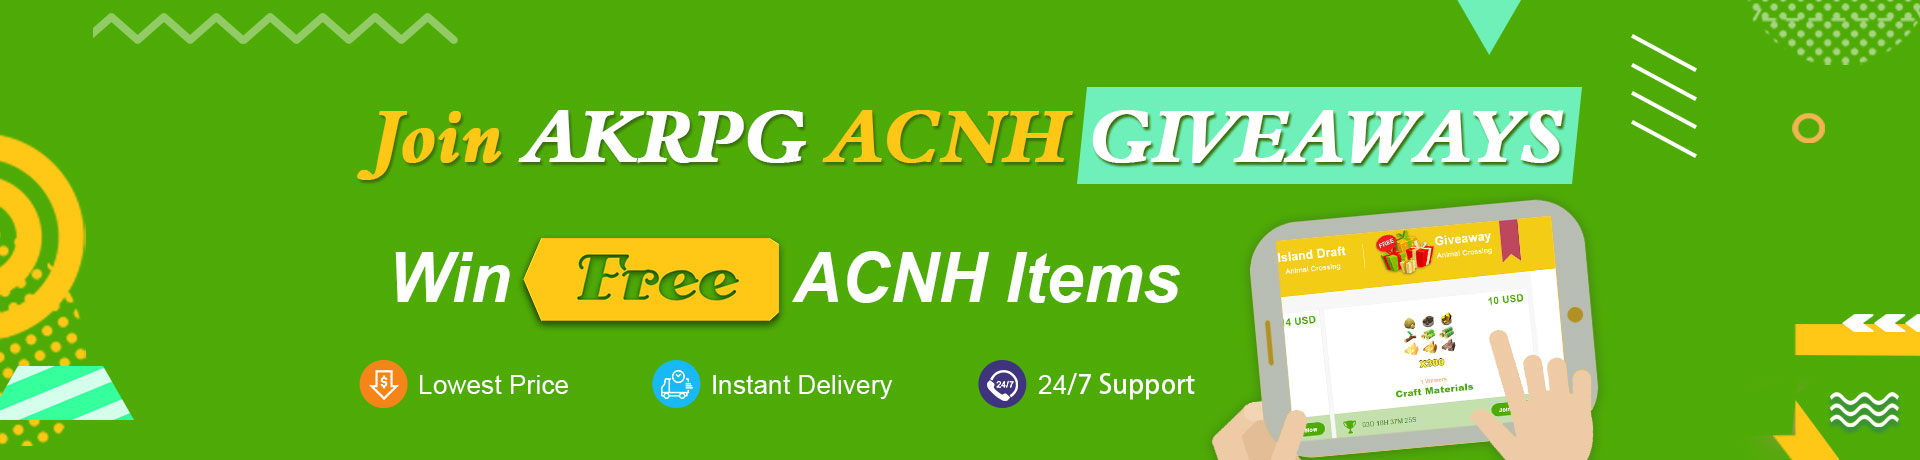 Free ACNH Giveaways